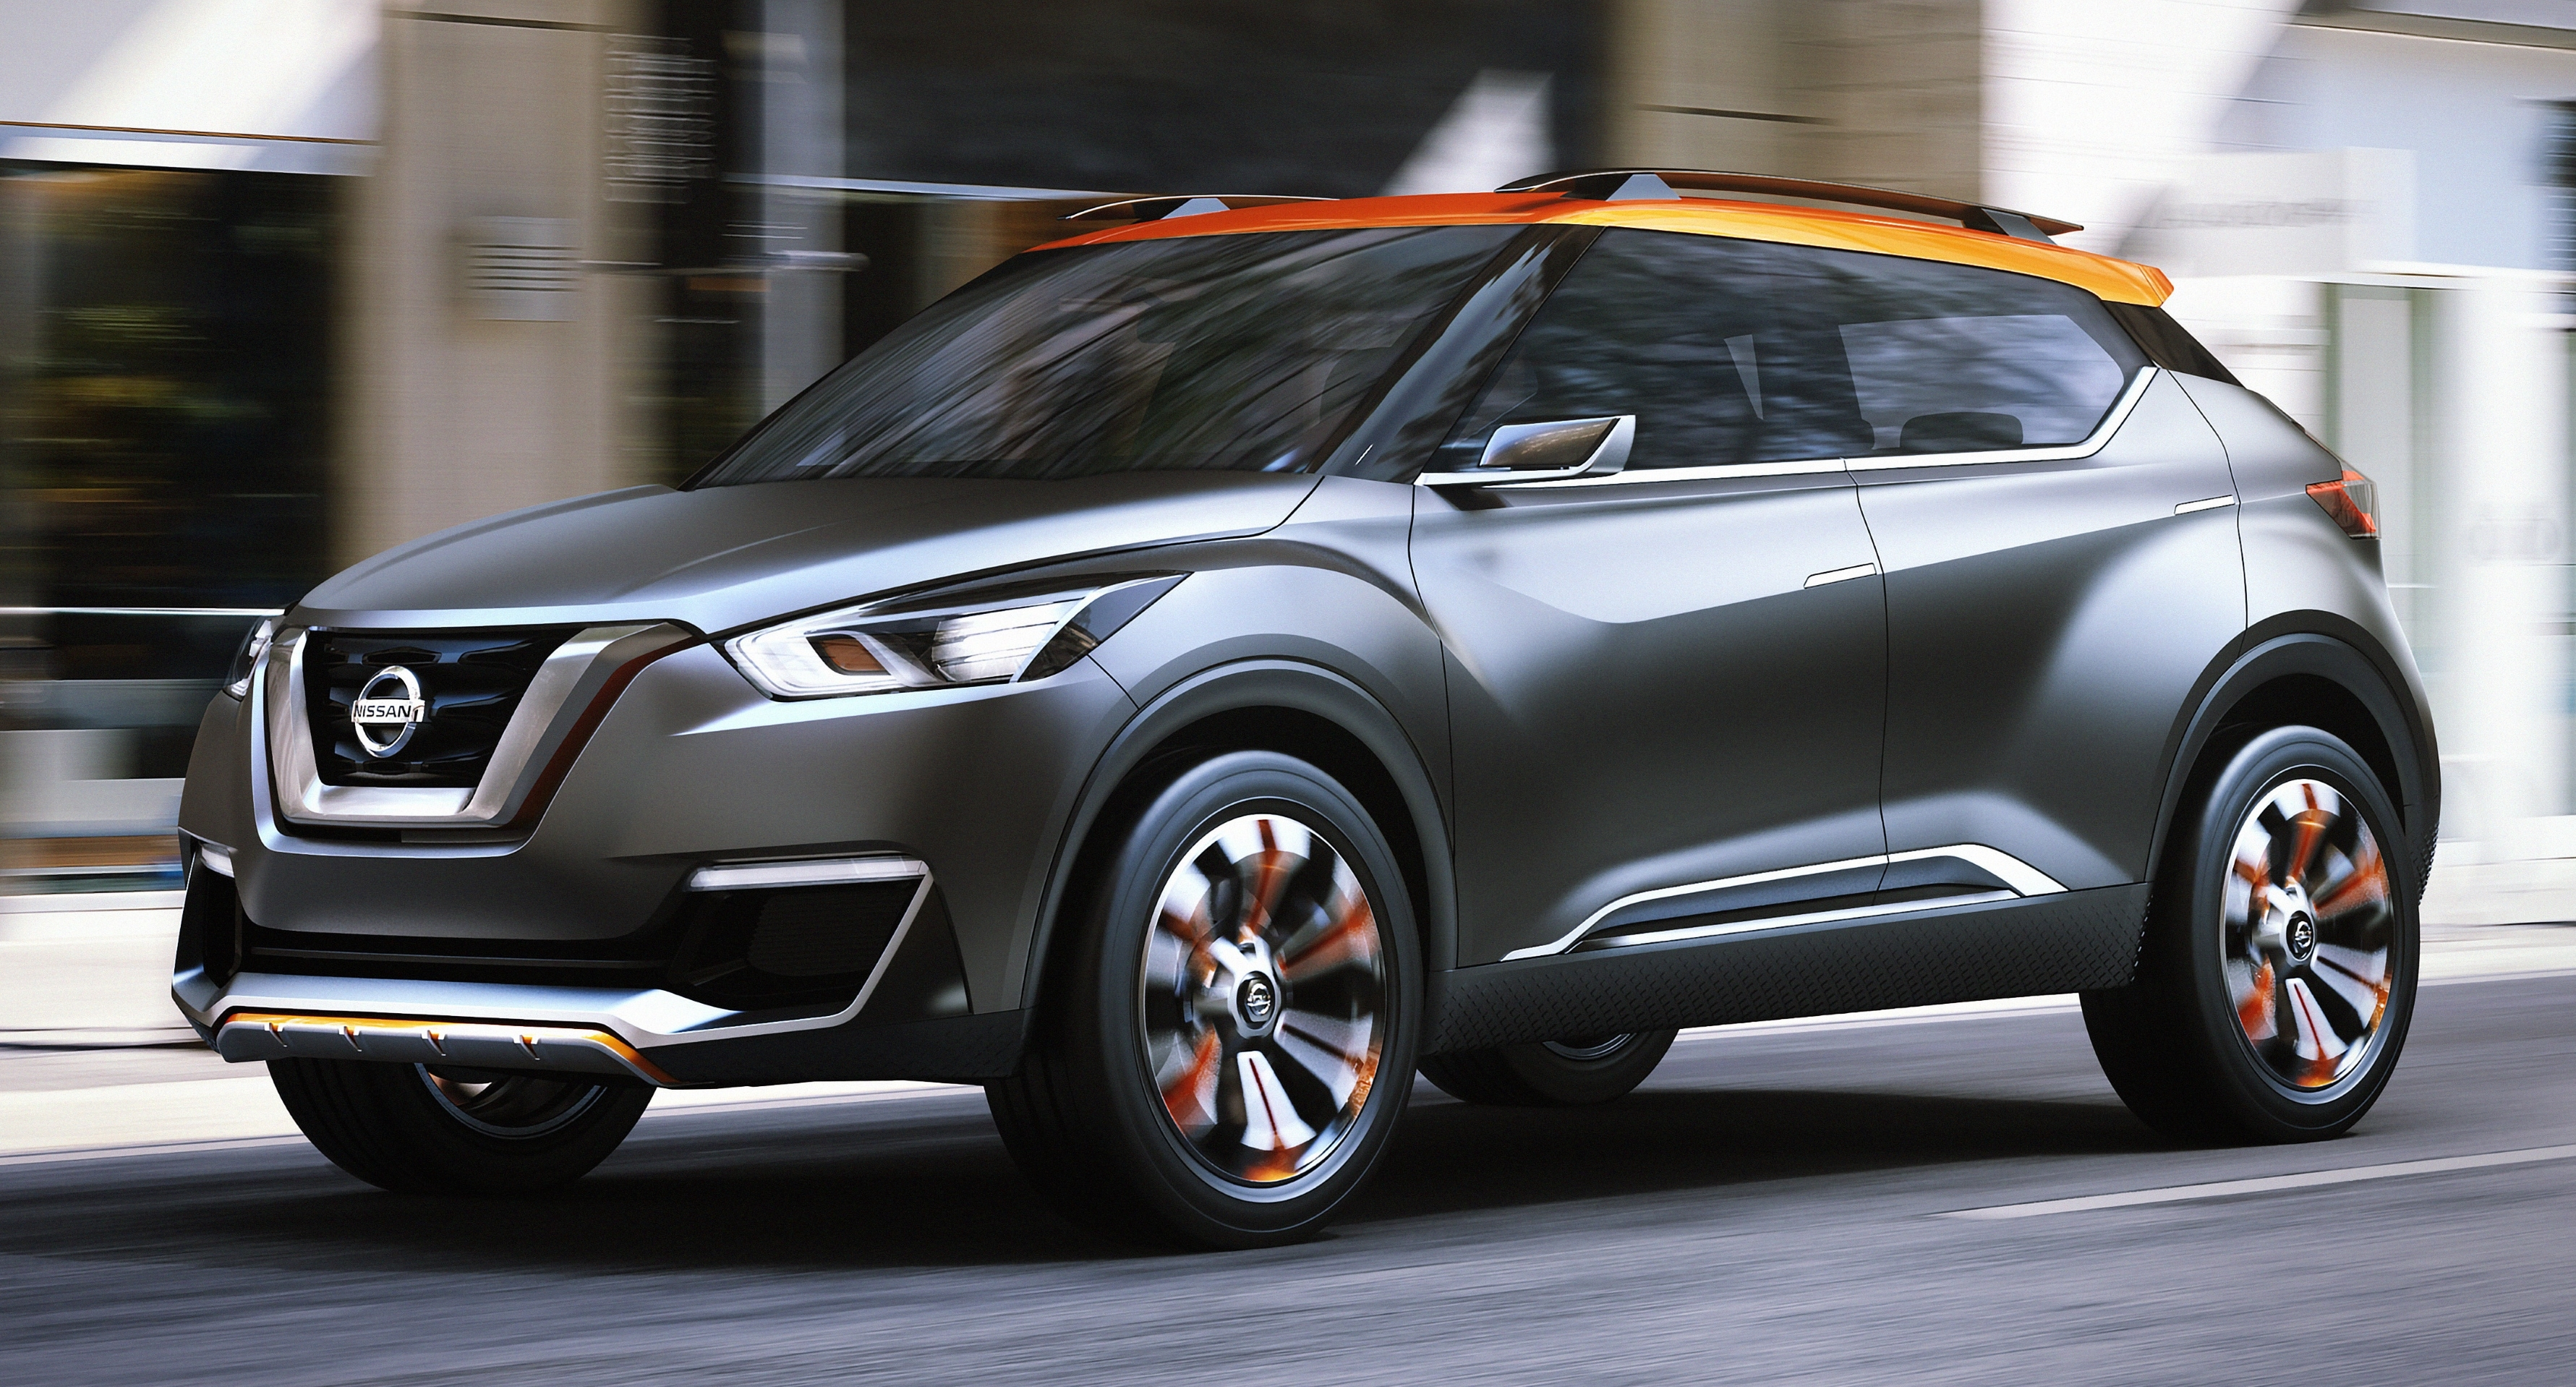 Nissan Kicks - new global crossover to debut this year